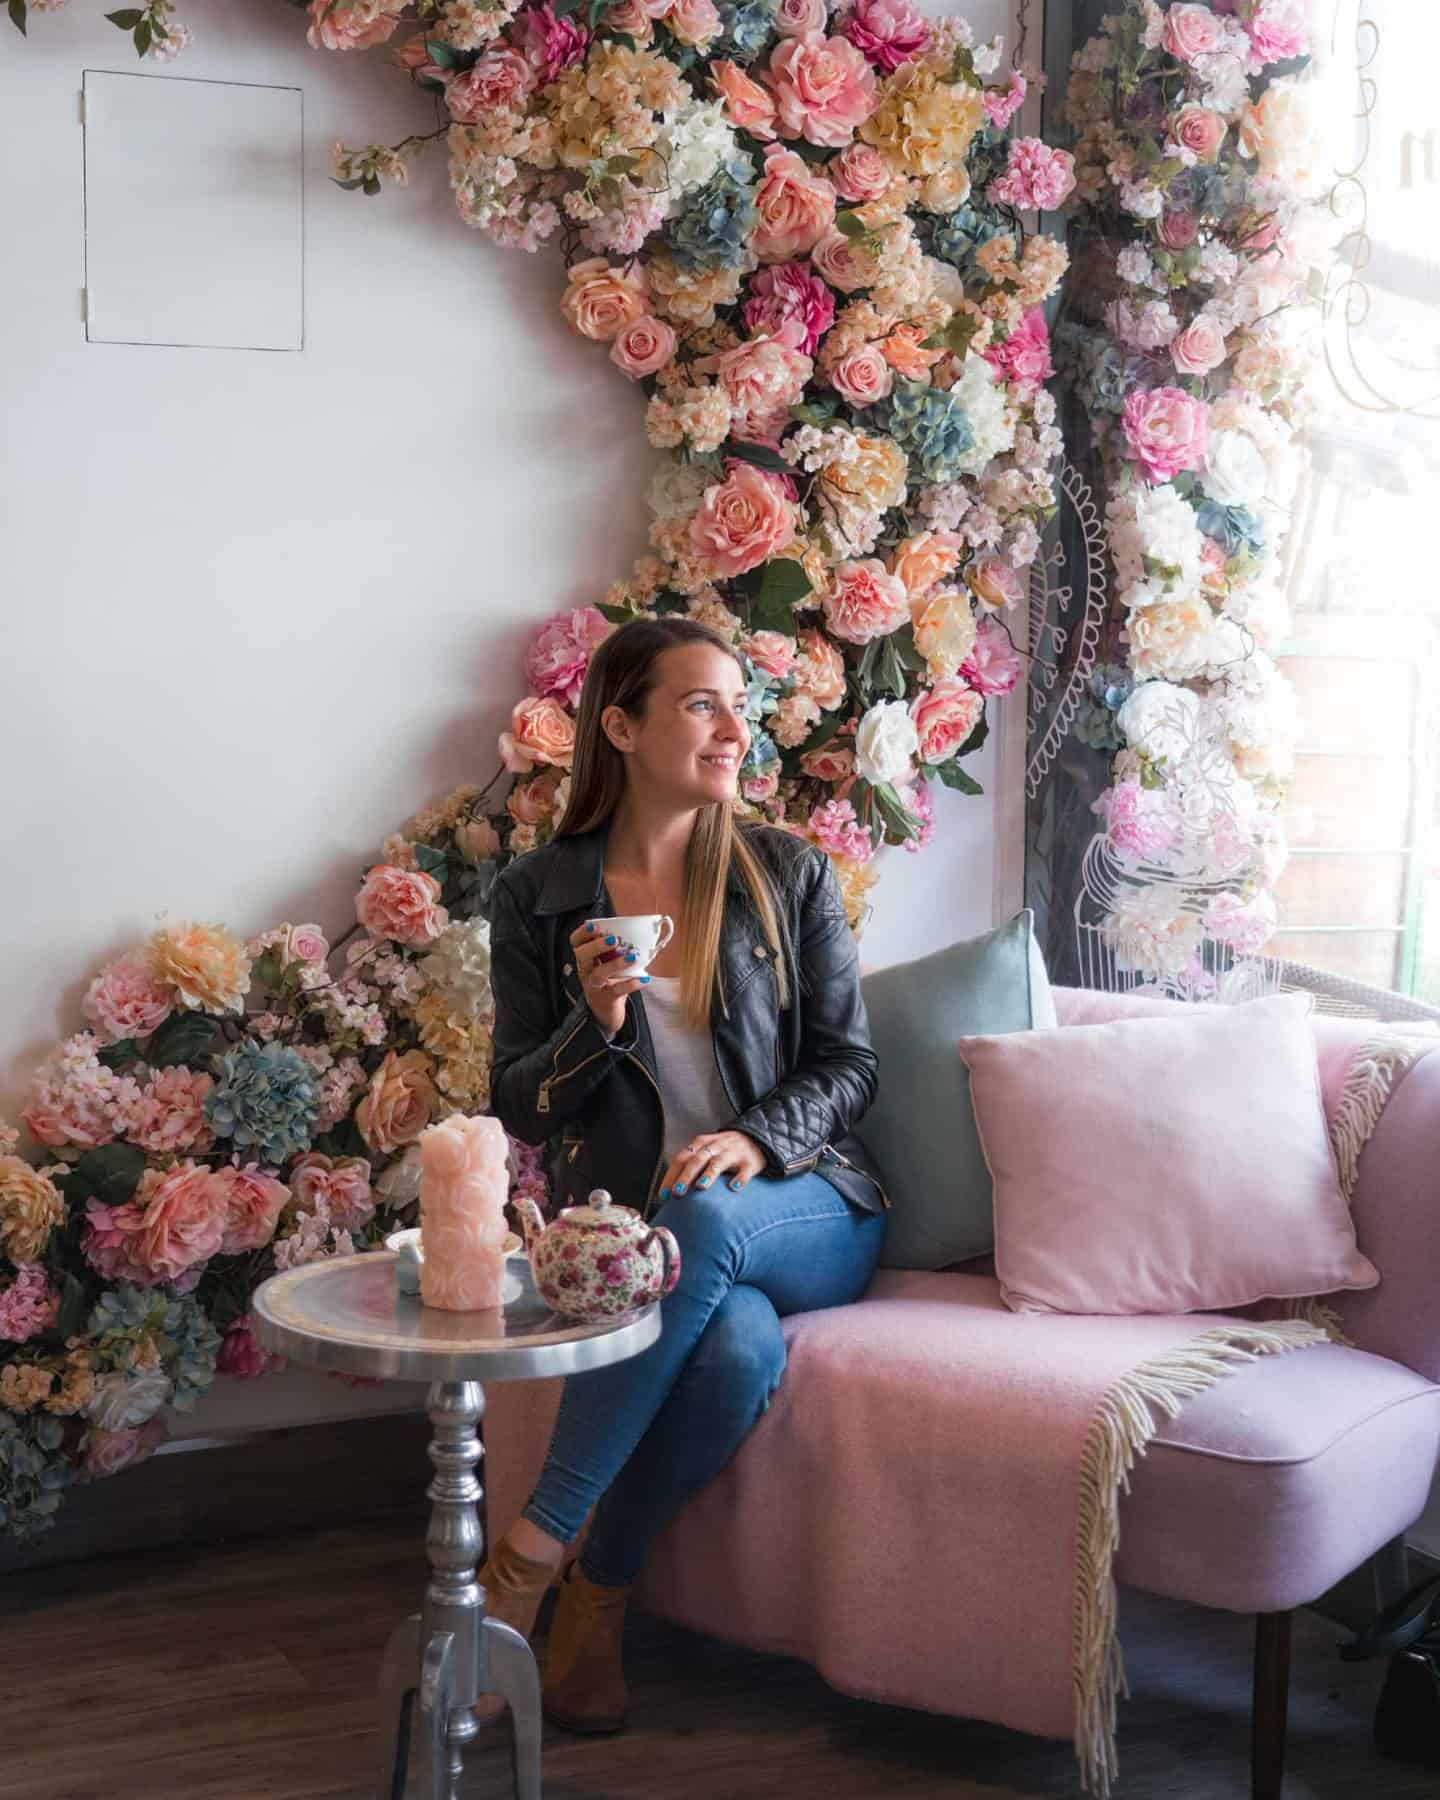 An instagrammable Interior floral display at Fait Maison Gloucester Road London